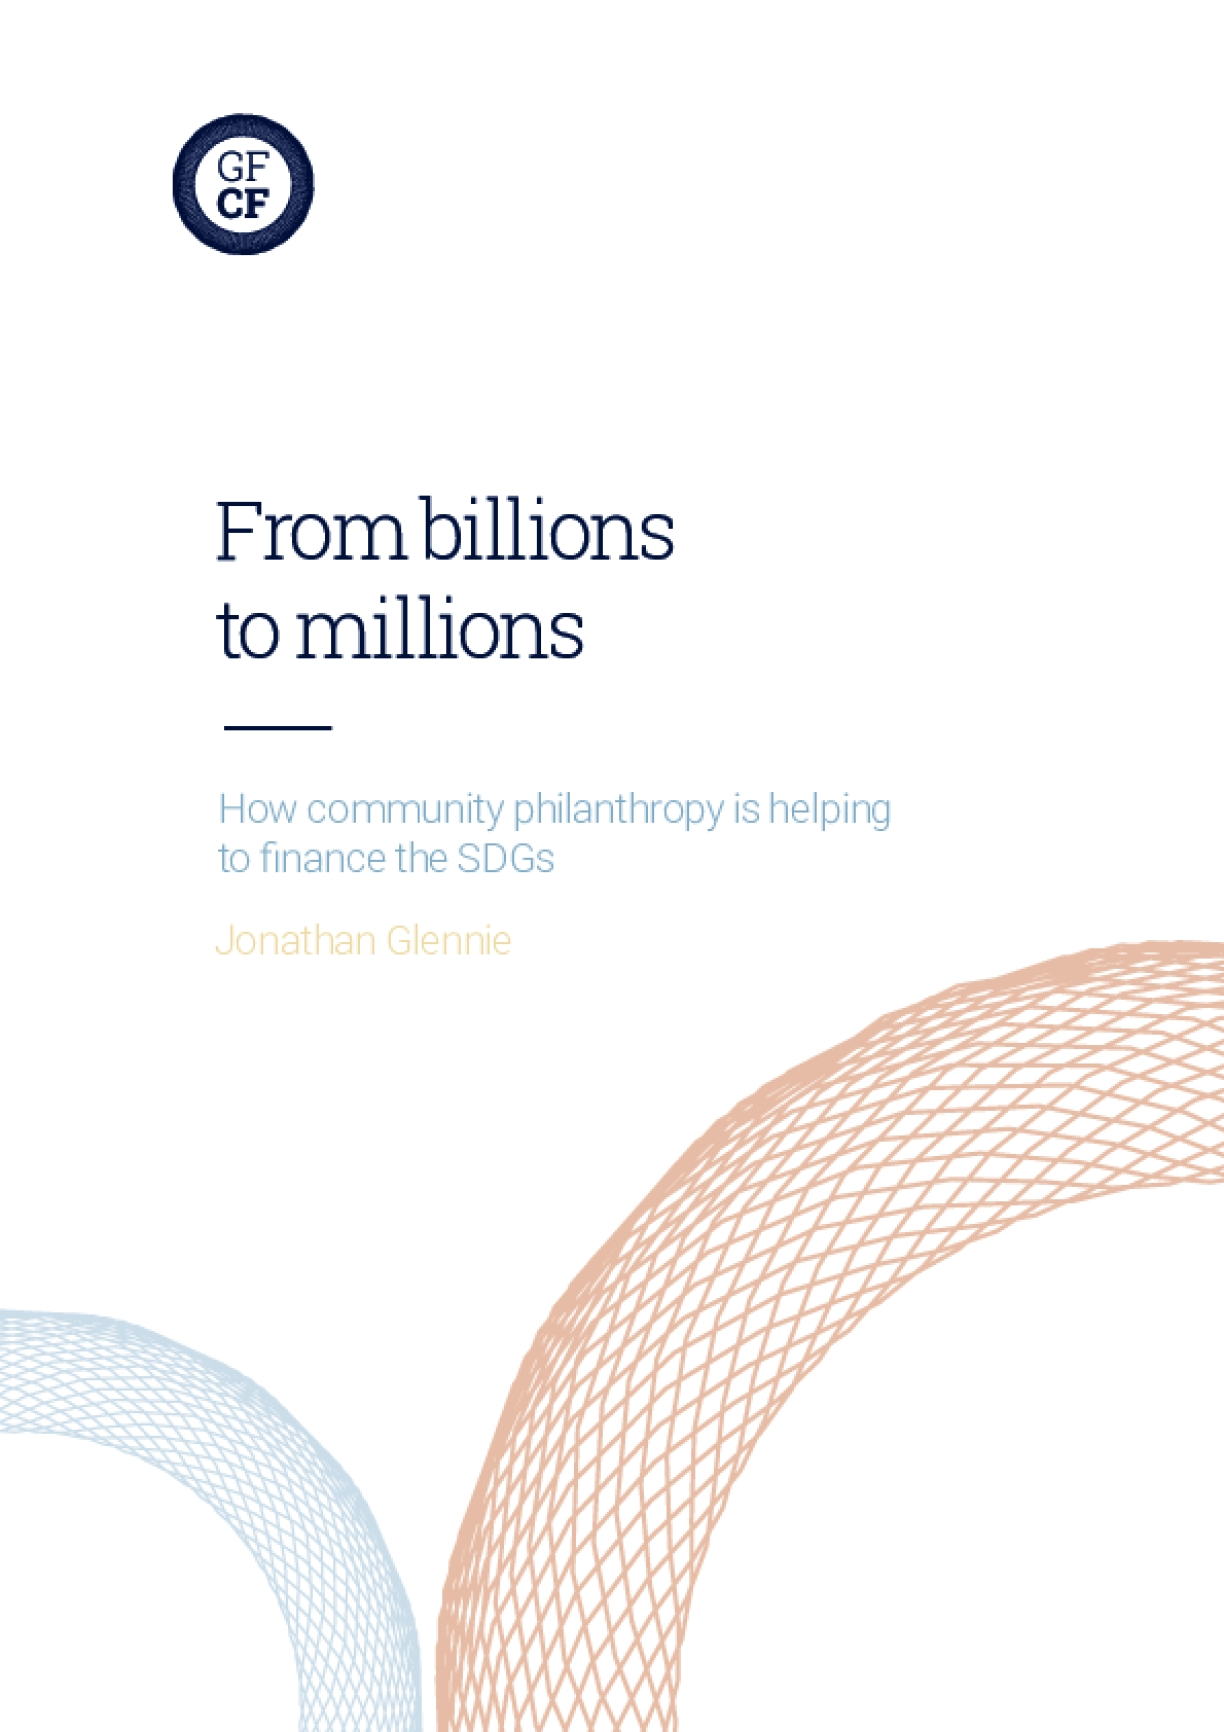 From Billions to Millions: How Community Philanthropy is Helping to Finance the SDGs